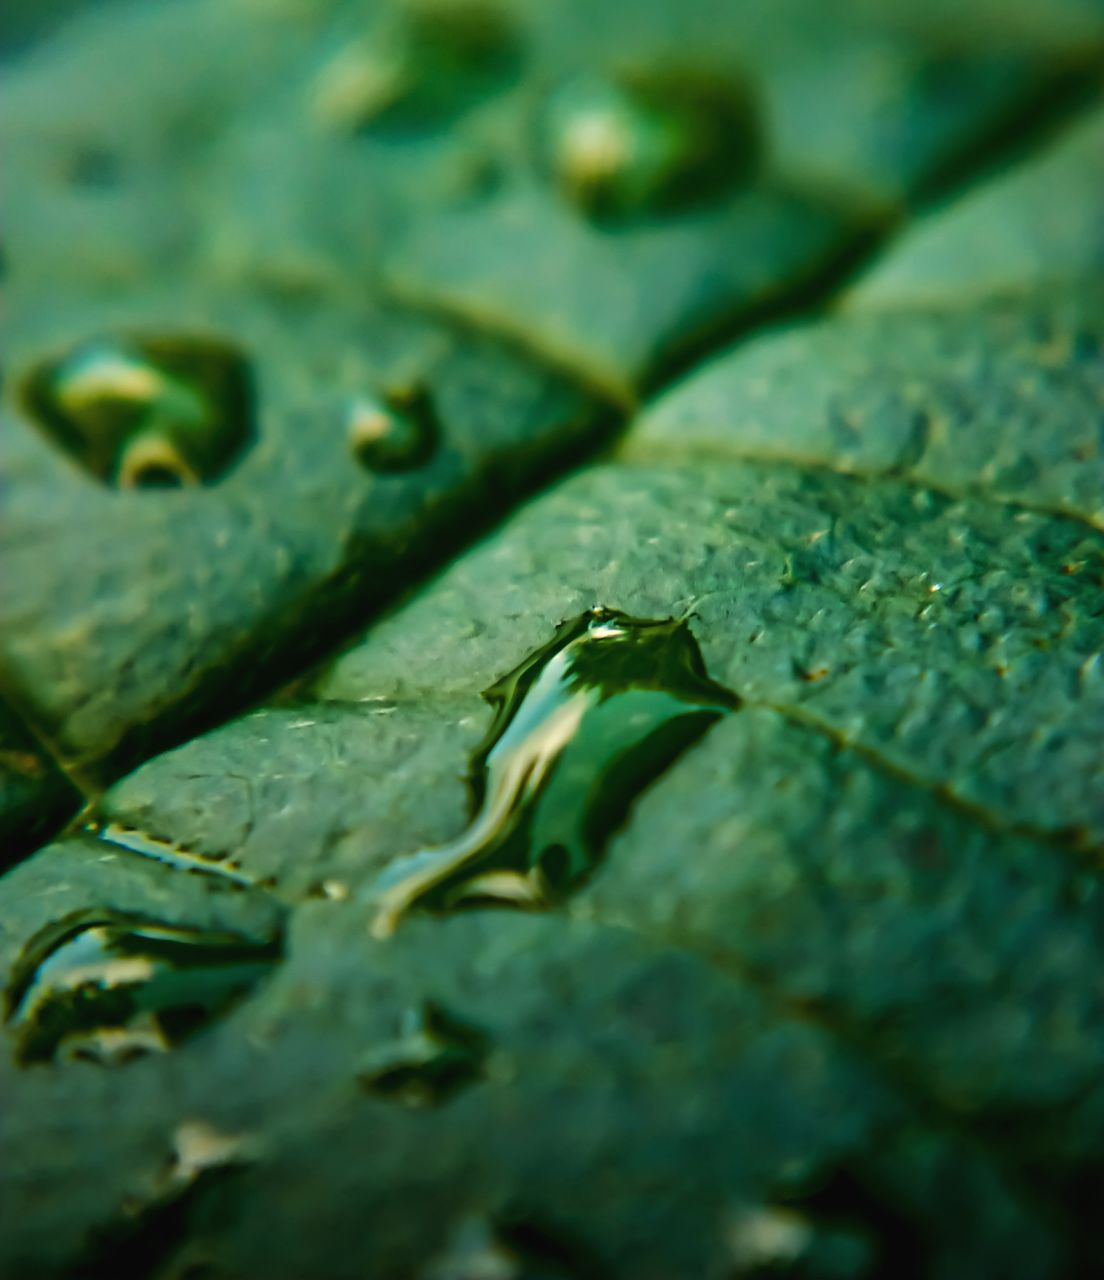 selective focus, close-up, green color, full frame, no people, leaf, backgrounds, textured, day, outdoors, nature, water, animal themes